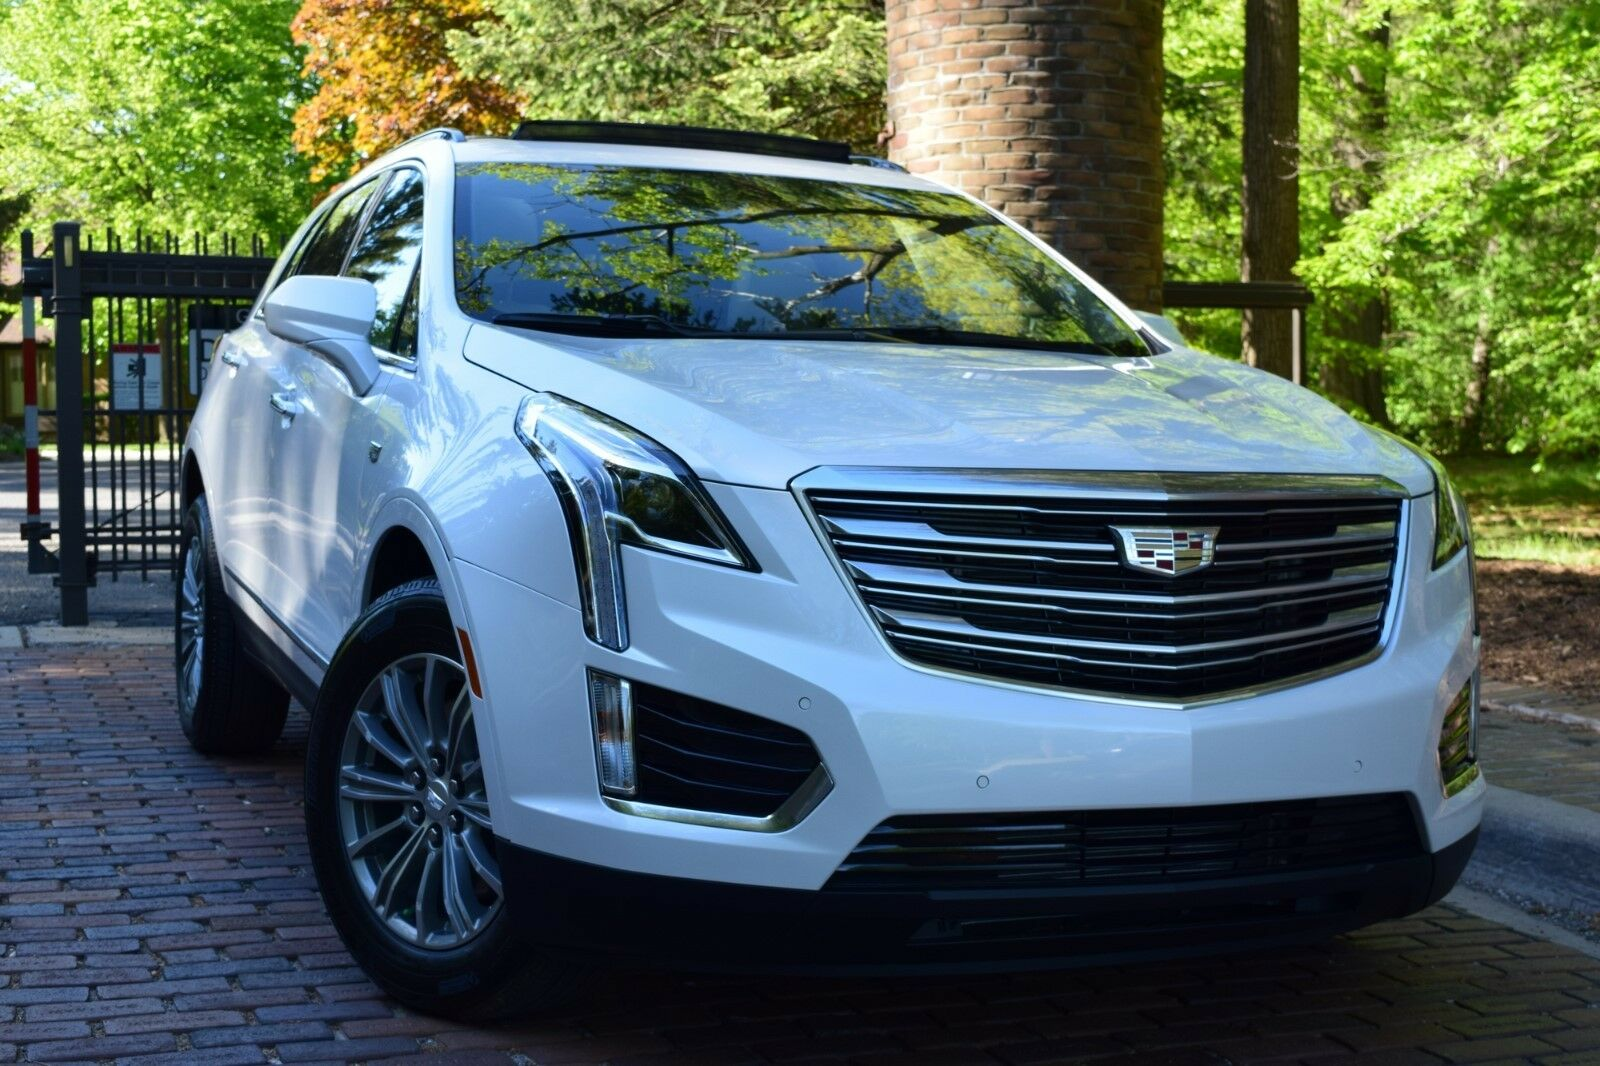 2017 cadillac xt5 luxury awd sport utility 4 door. Black Bedroom Furniture Sets. Home Design Ideas